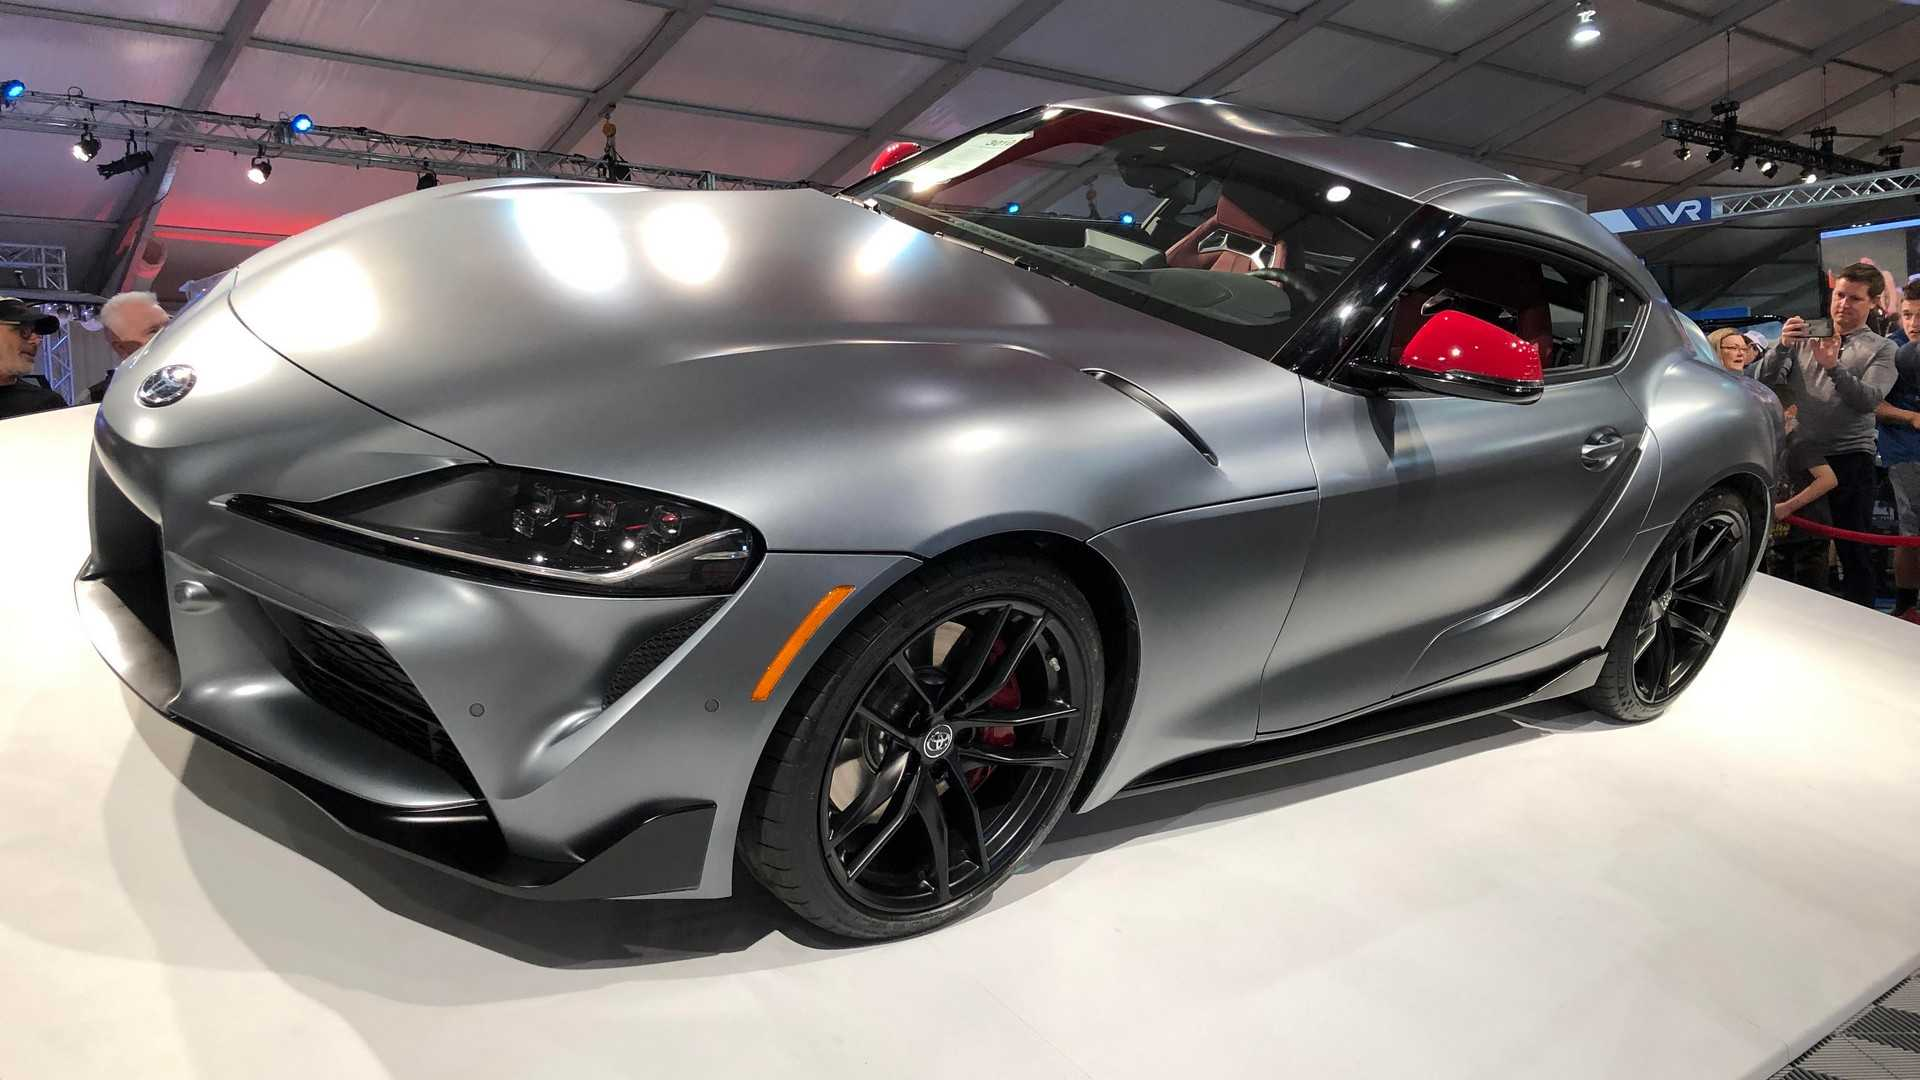 11 All New Who Bought The 2020 Toyota Supra At Barrett Jackson New Concept by Who Bought The 2020 Toyota Supra At Barrett Jackson